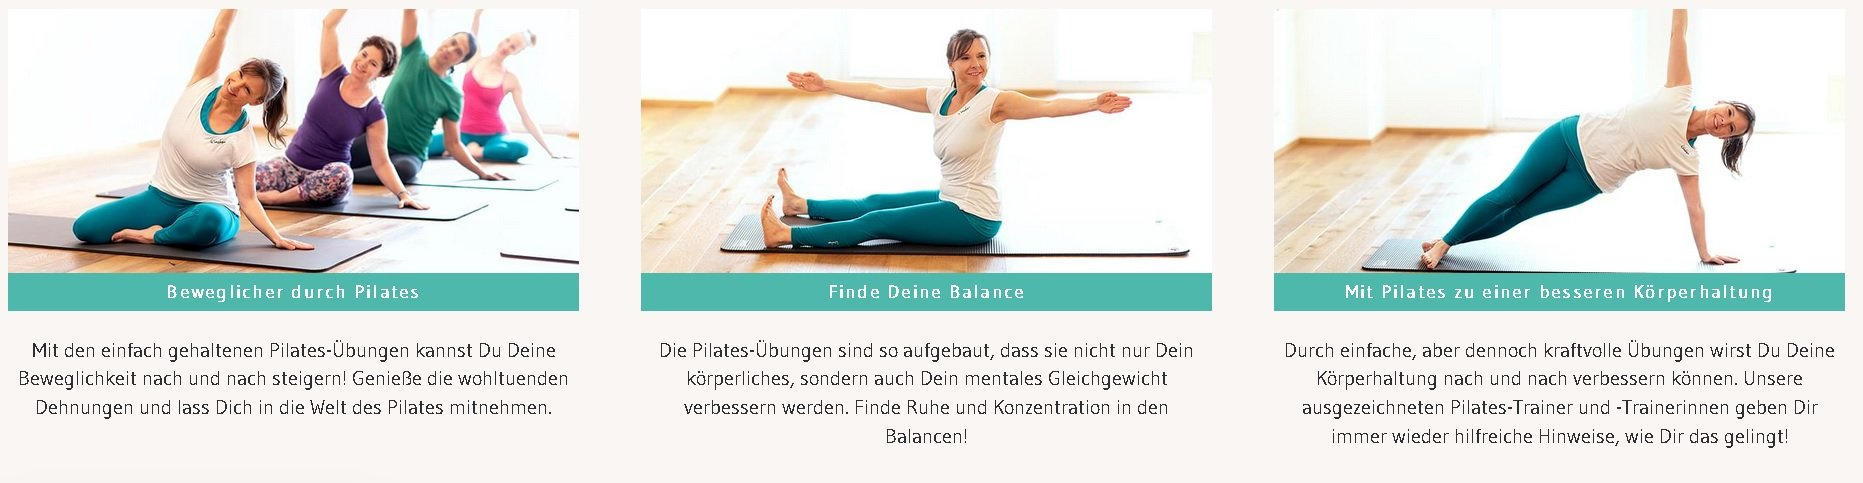 Das virtuelle Pilates-Studio